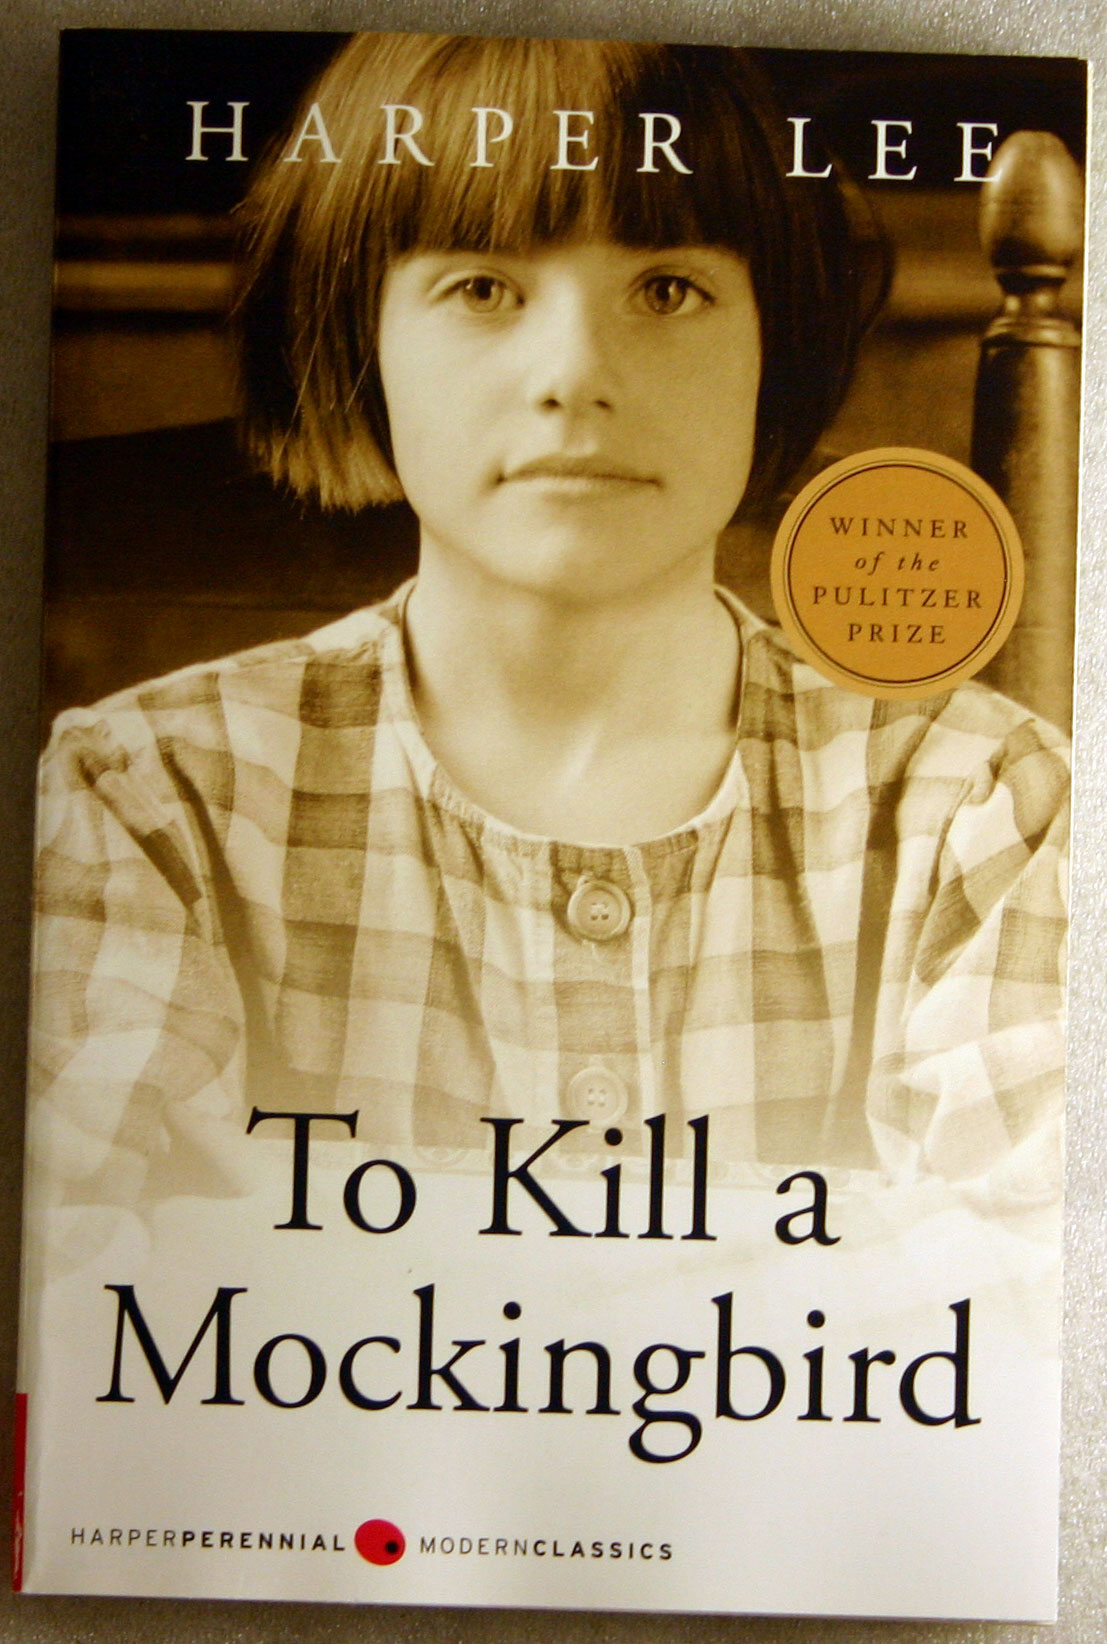 harper lee essays a essay harper lee wrote best essay writers a essay harper lee wrote best essay writers middot description to kill a mockingbird